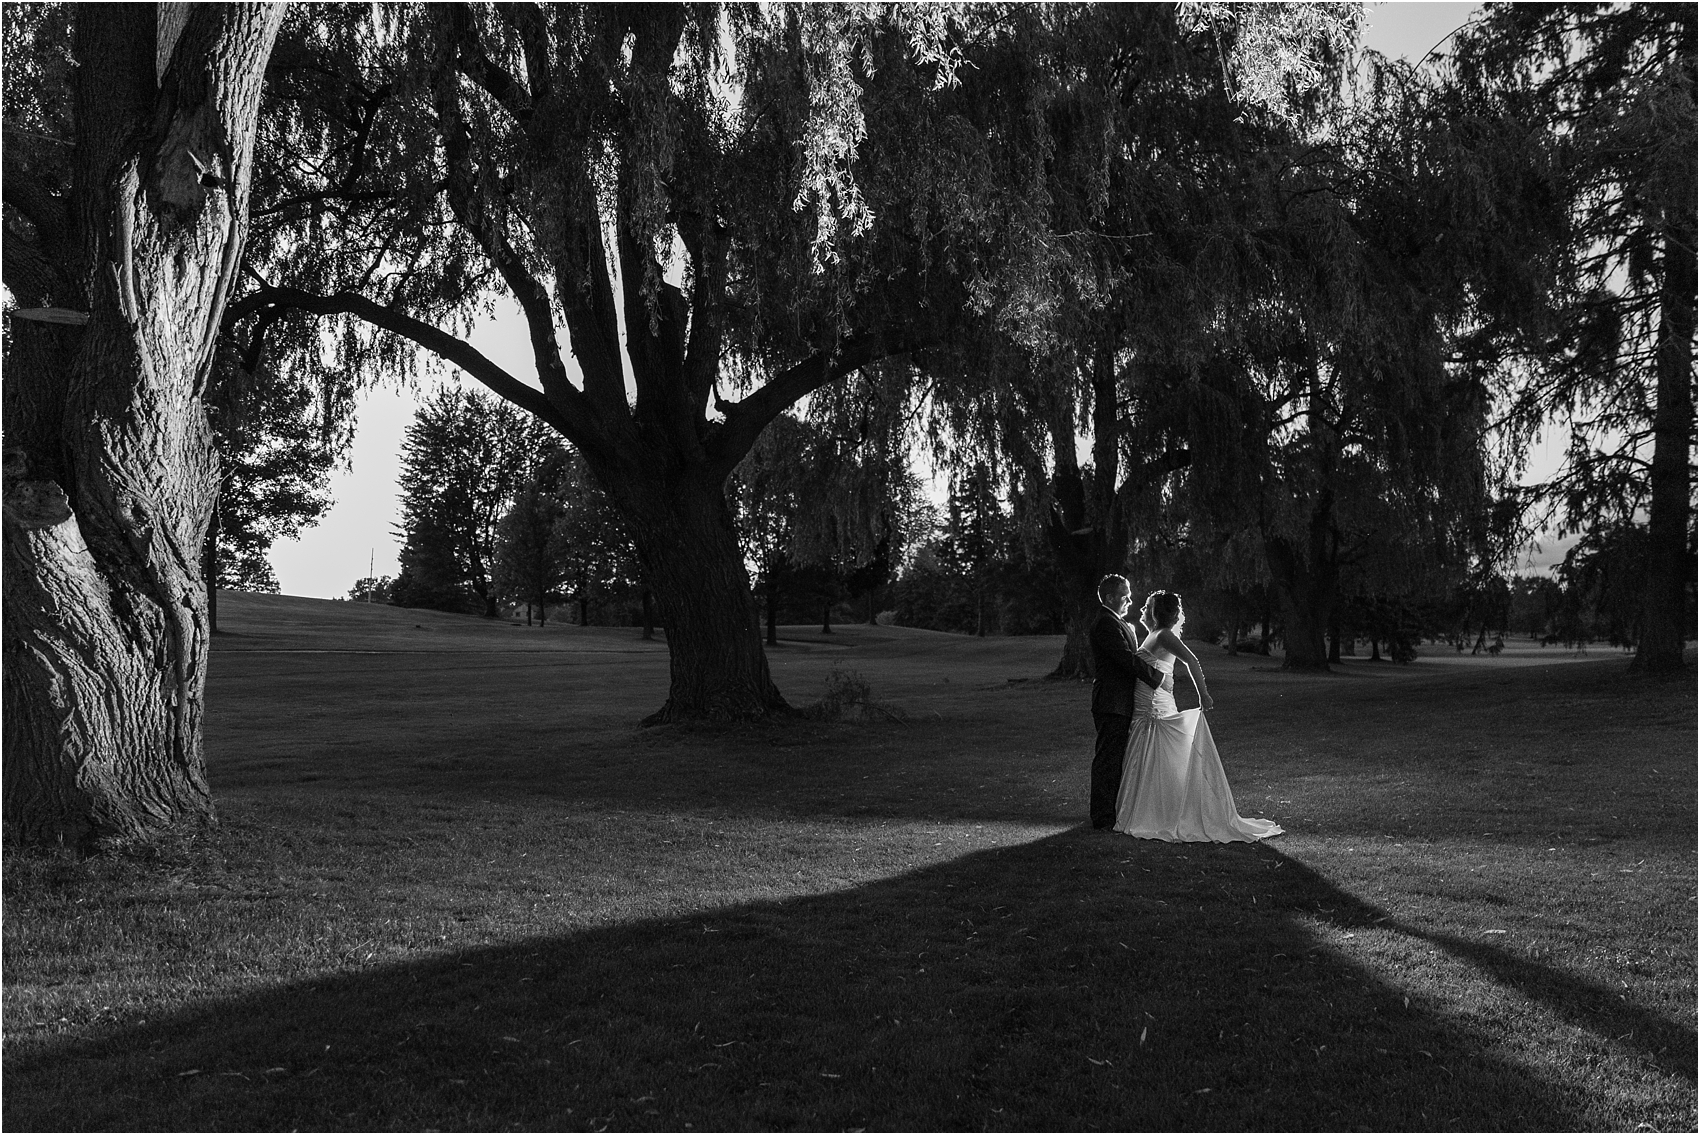 classic-wedding-photos-at-great-oaks-country-club-in-rochester-hills-mi-by-courtney-carolyn-photography_0117.jpg